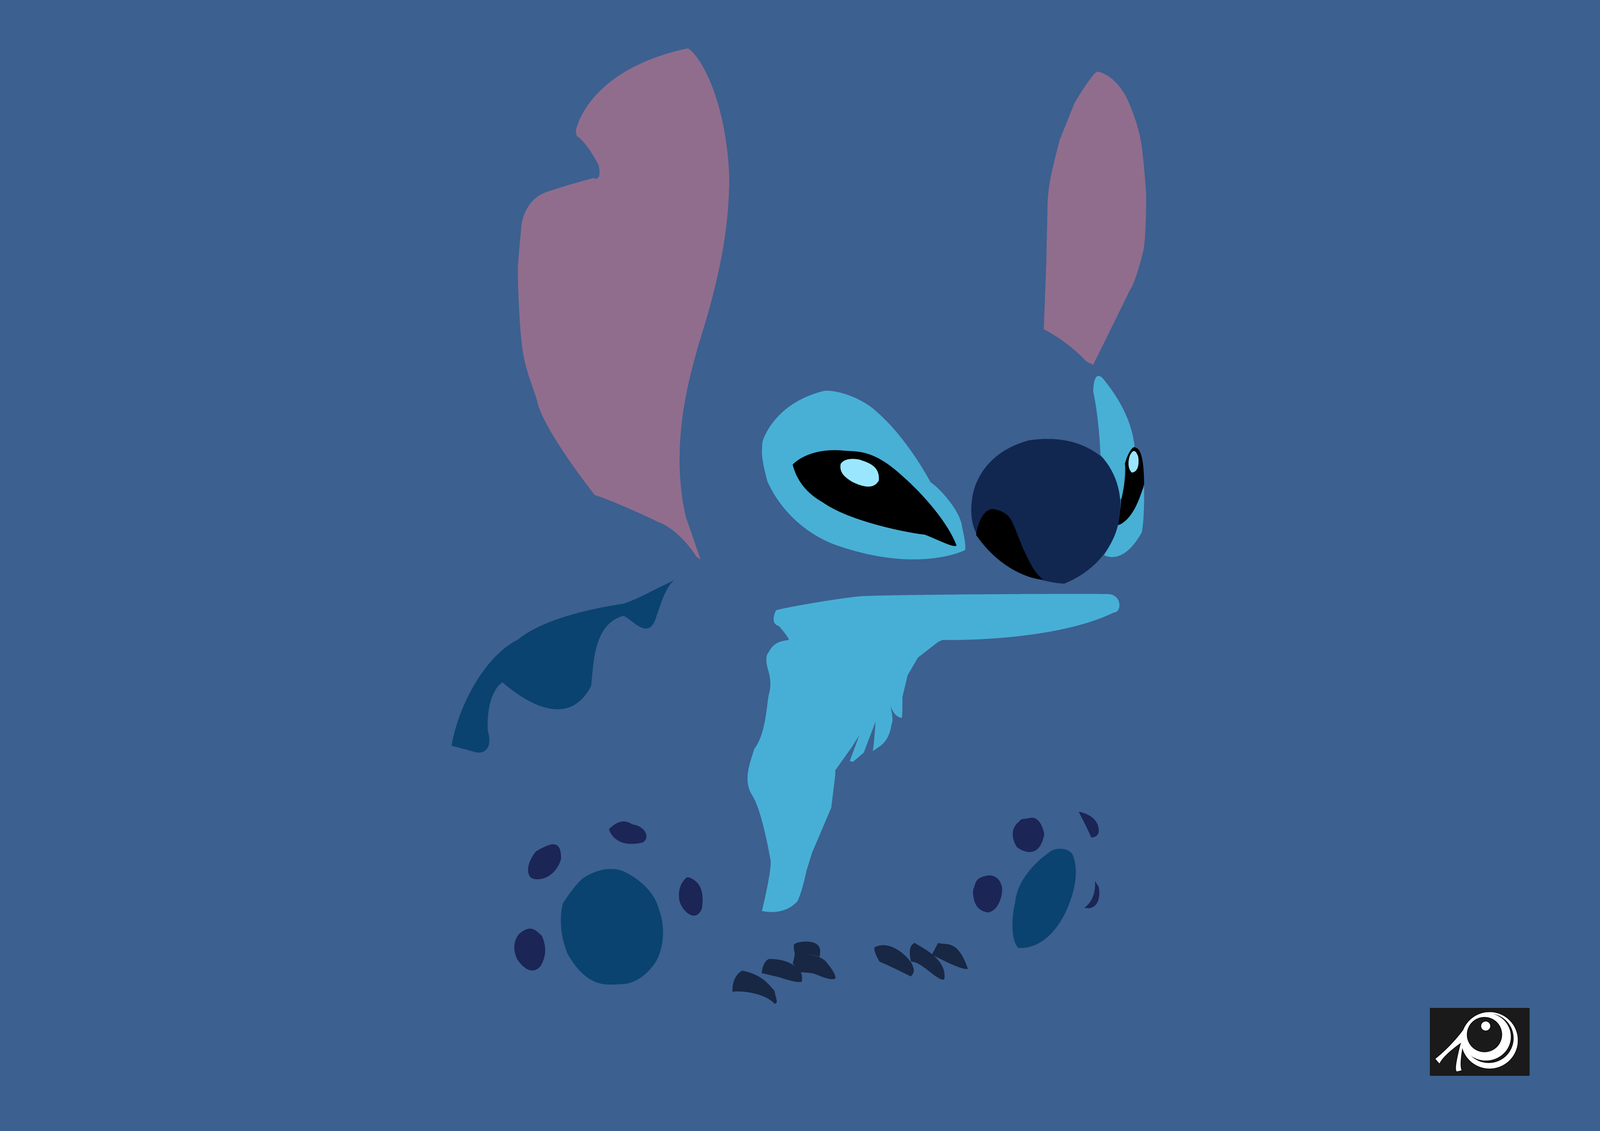 Stitch Minimaliste Cute Stitch Wallpaper Cute Wallpaper Backgrounds